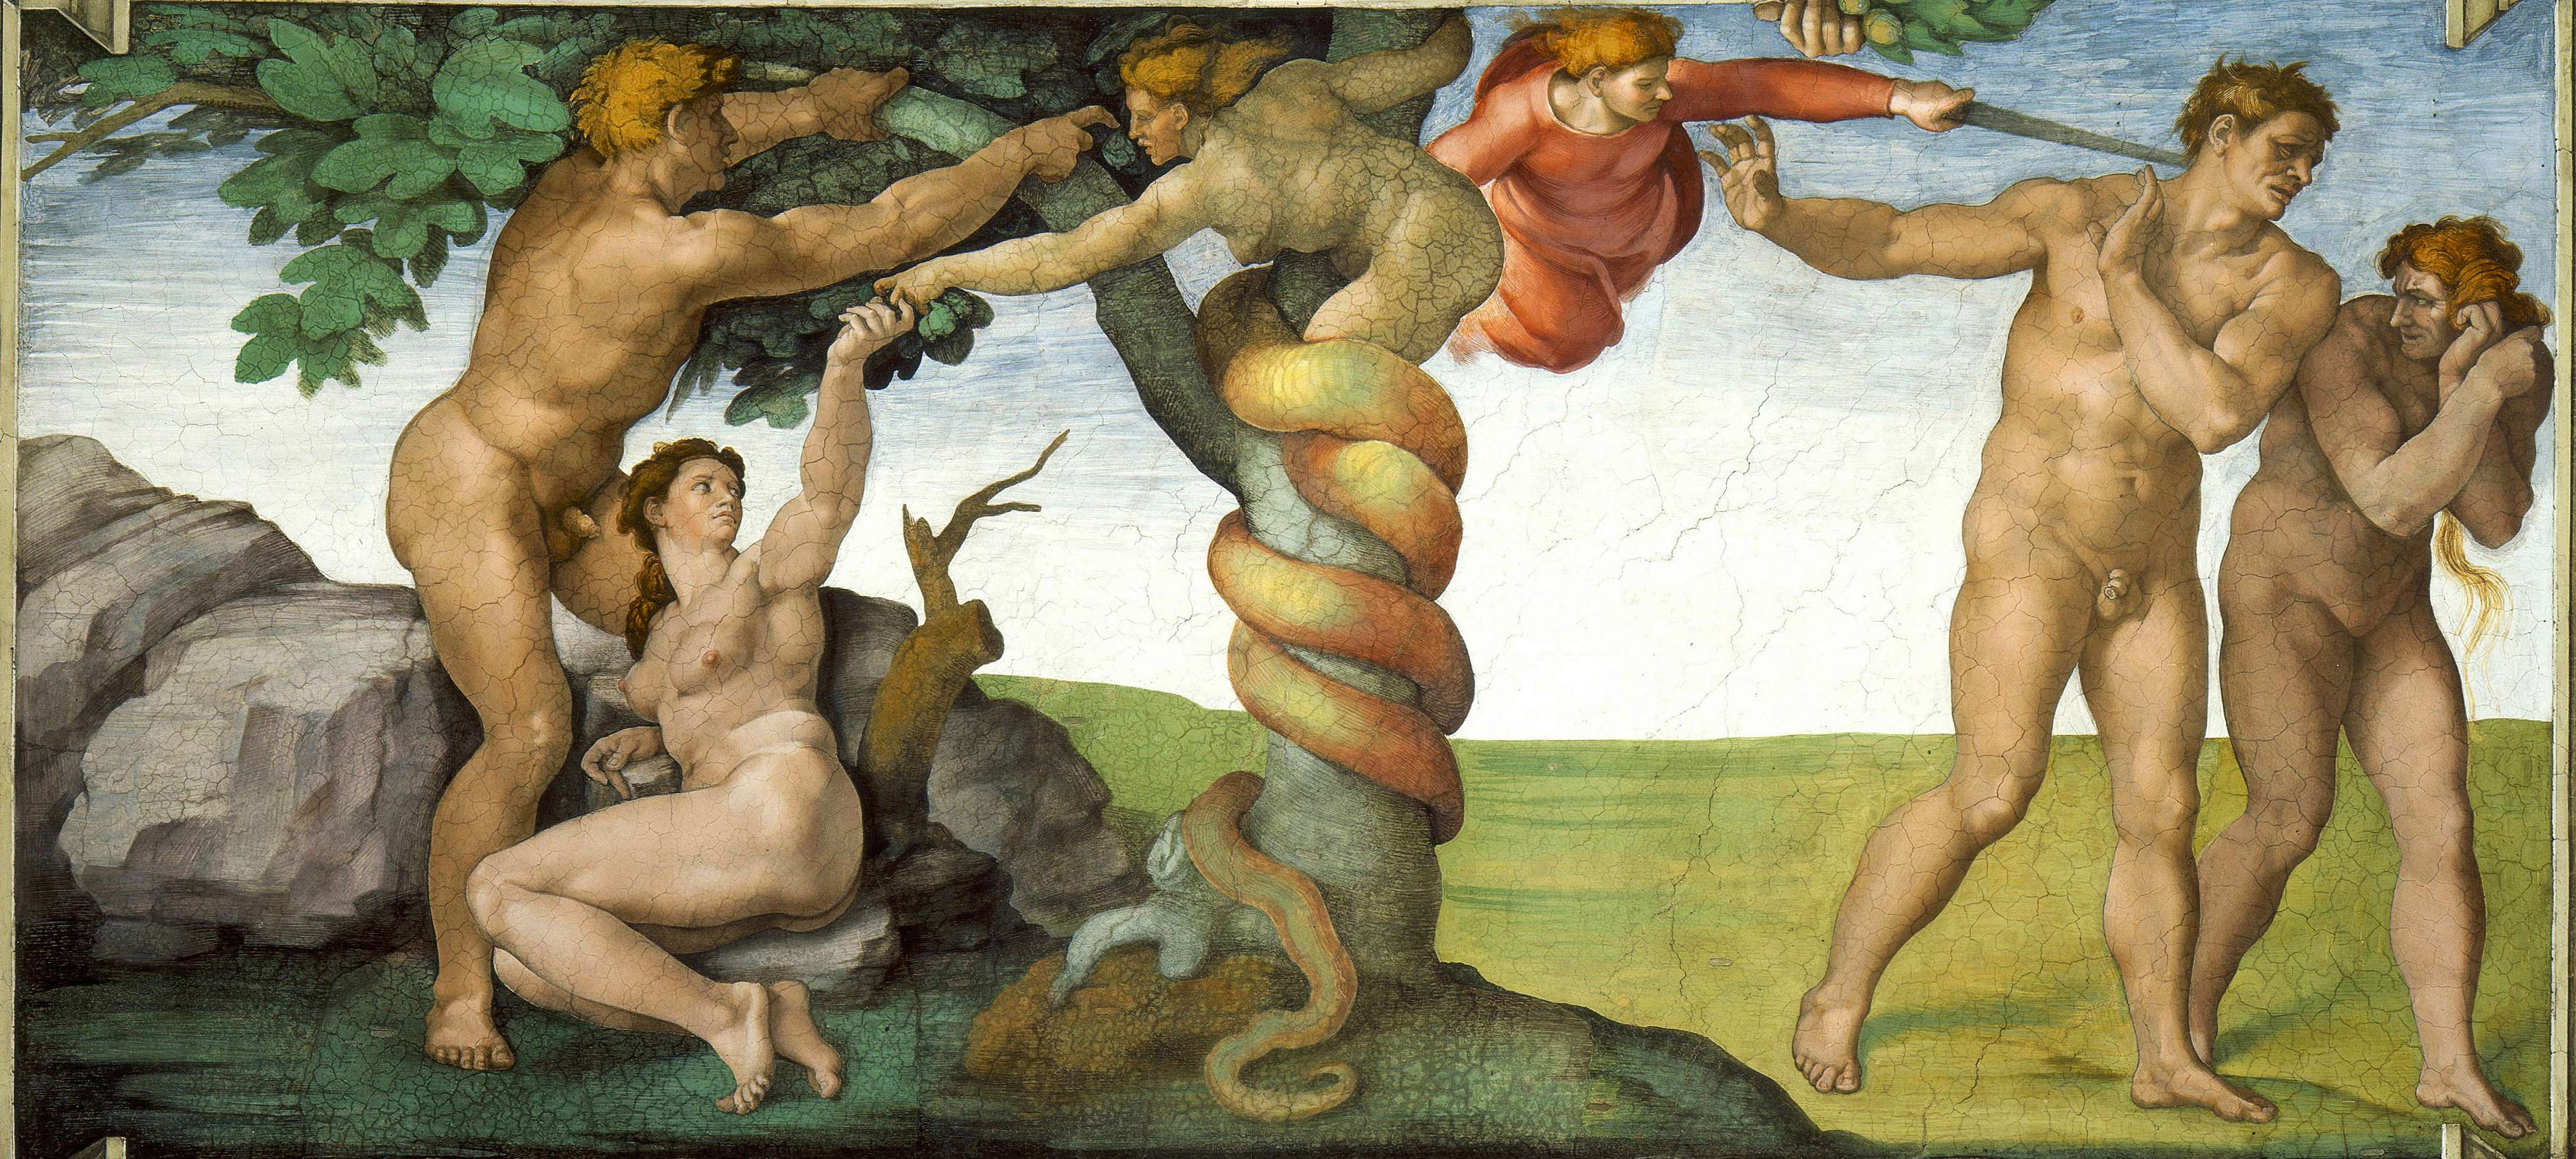 Temptation and Fall Michelangelo. From the Sistine Chapel Ceiling.